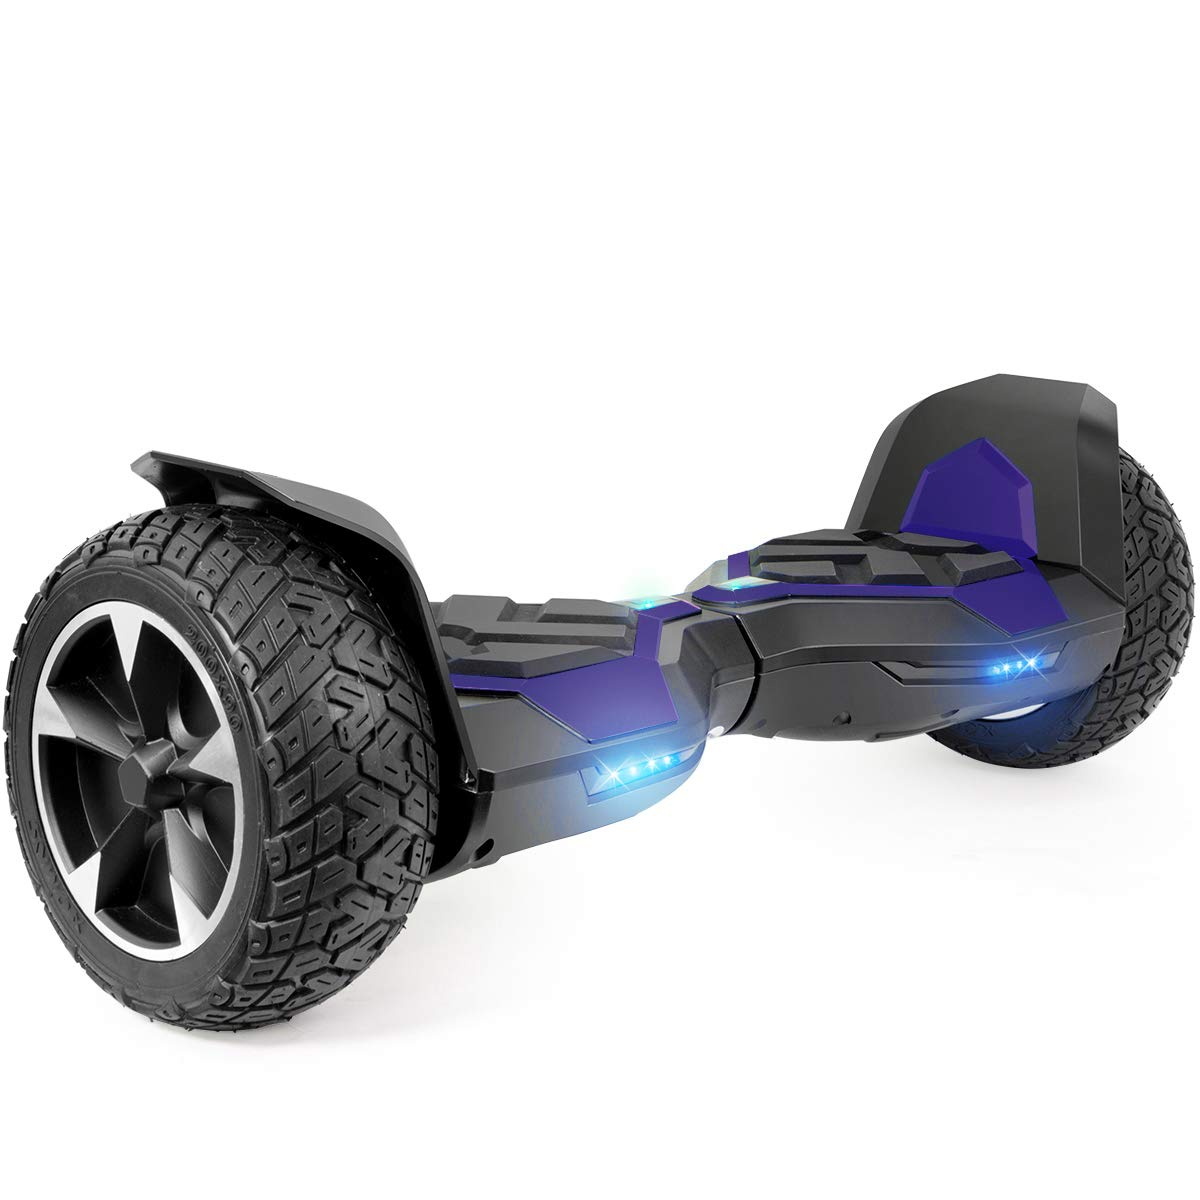 XtremepowerUS 8.5 Inch Off-Road All Terrain Self-Balancing Hoverboard, w Bluetooth Speaker